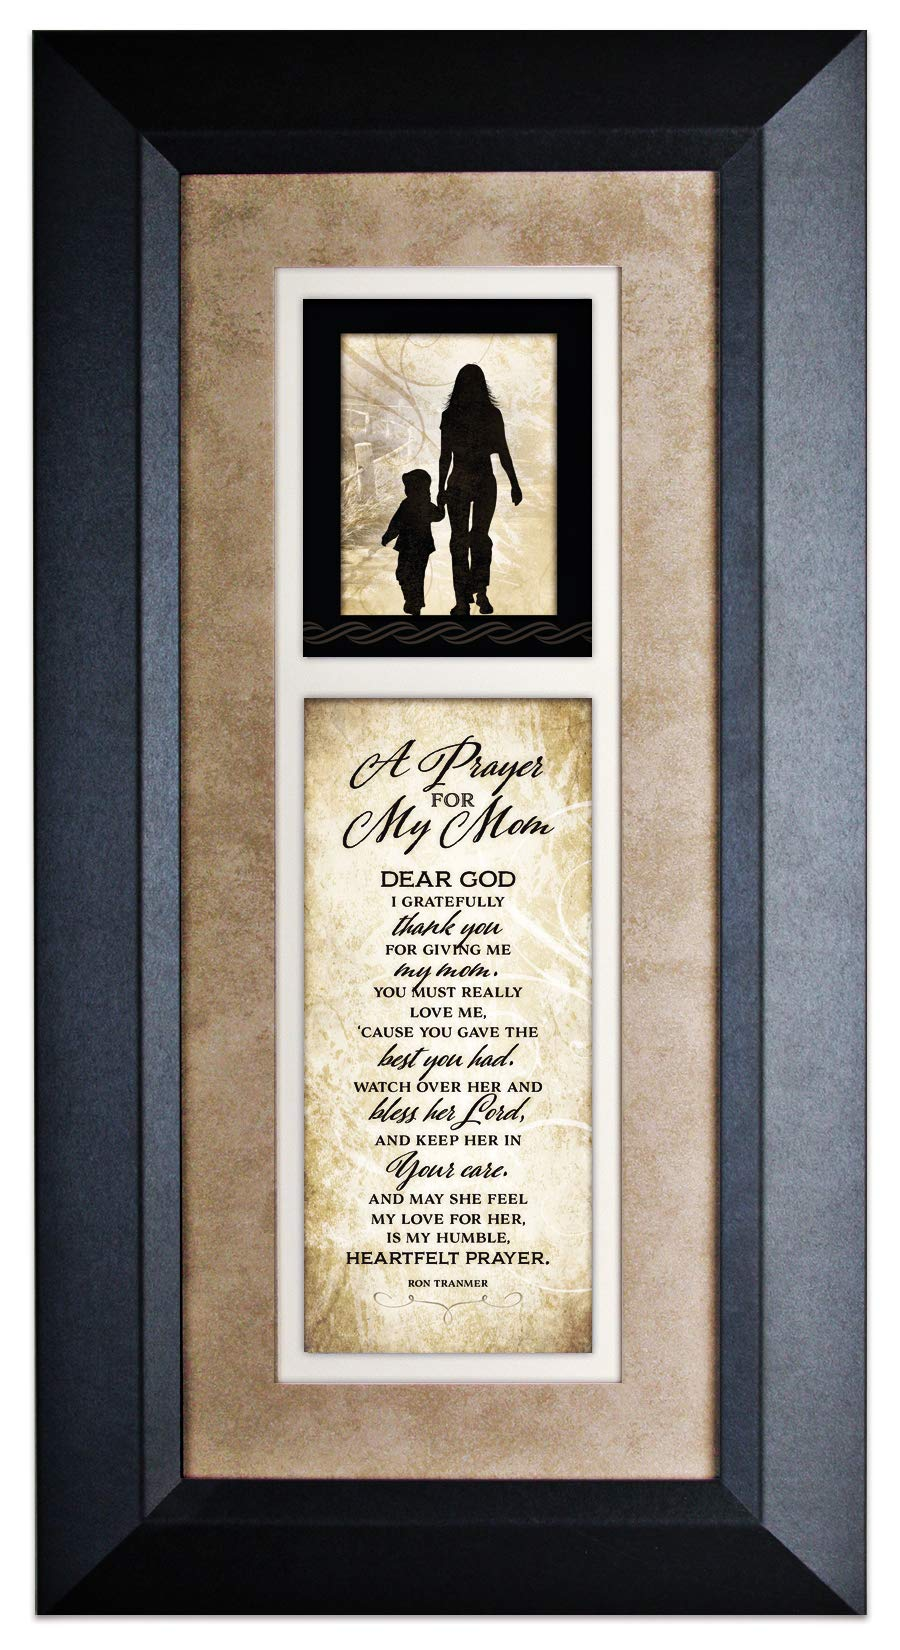 Dexsa A Prayer for My Mom Wood Wall Art Frame Plaque | 8 inches x 16 inches | Hanger for Hanging | Dear God I Gratefully Thank You for Giving me My Mom James Lawrence by Dexsa